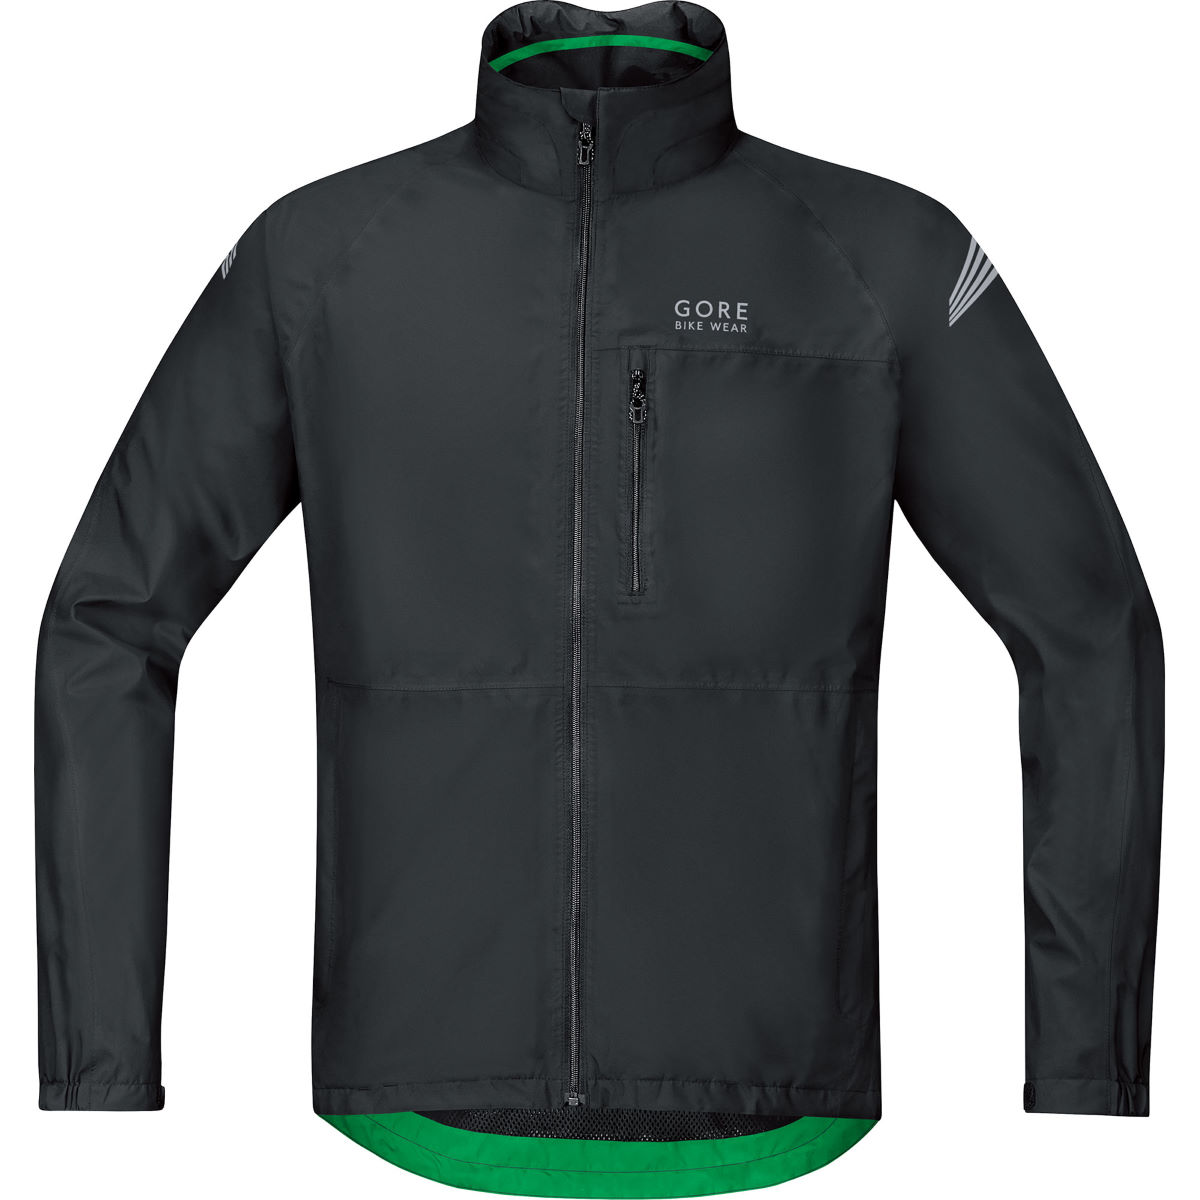 Veste Gore Bike Wear Element Gore-Tex - S Noir Vestes imperméables vélo